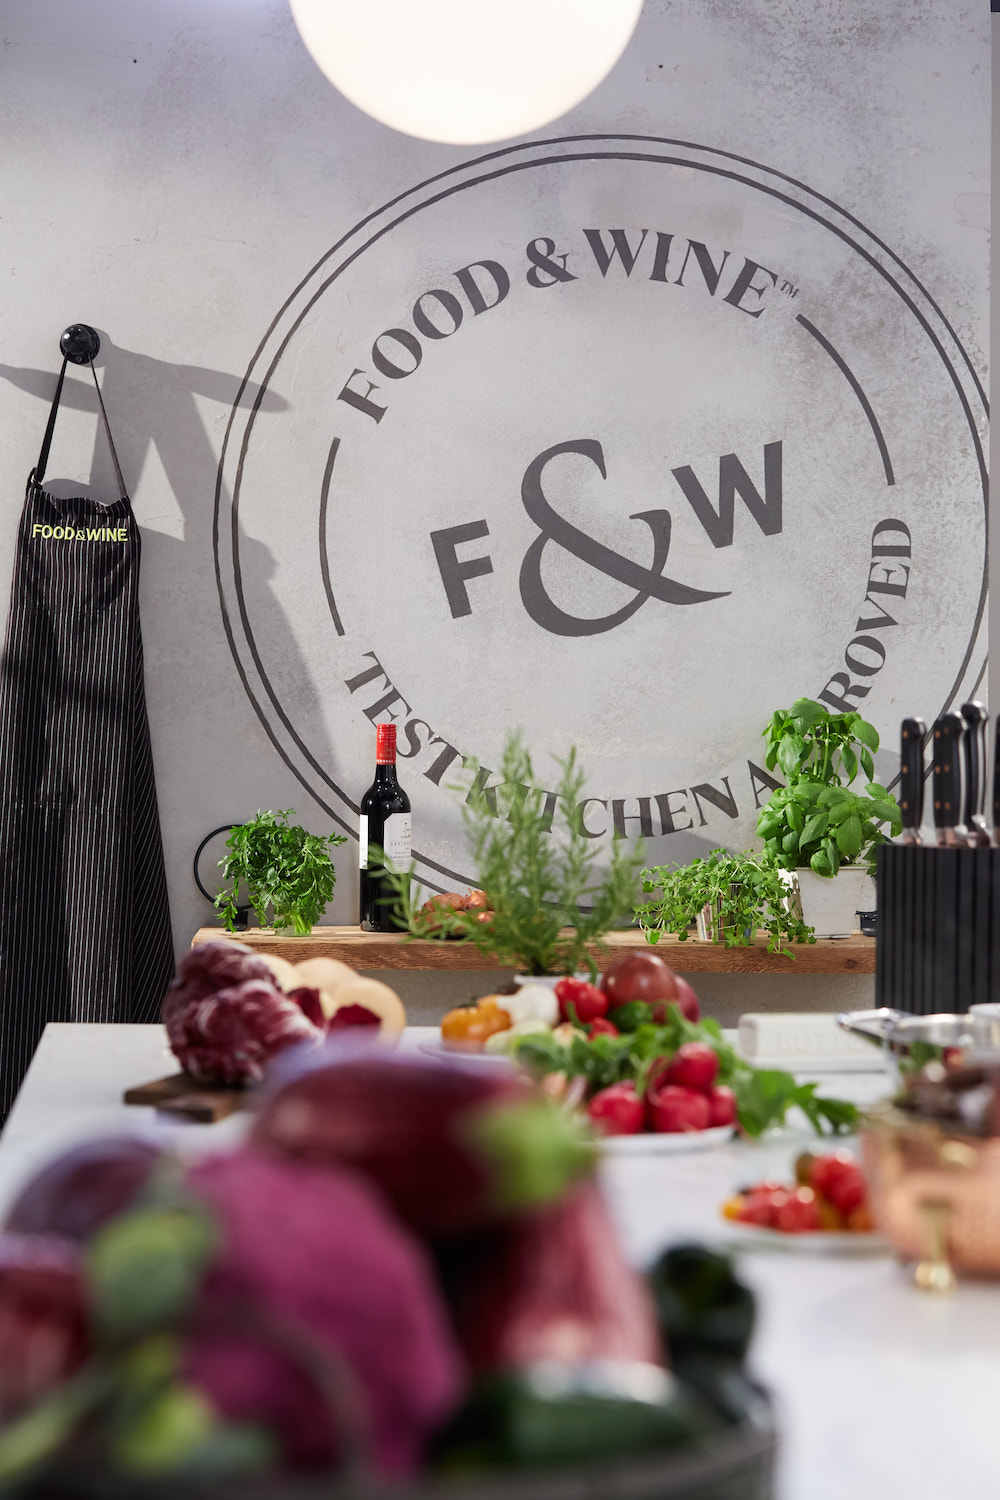 hsn food and wine logo